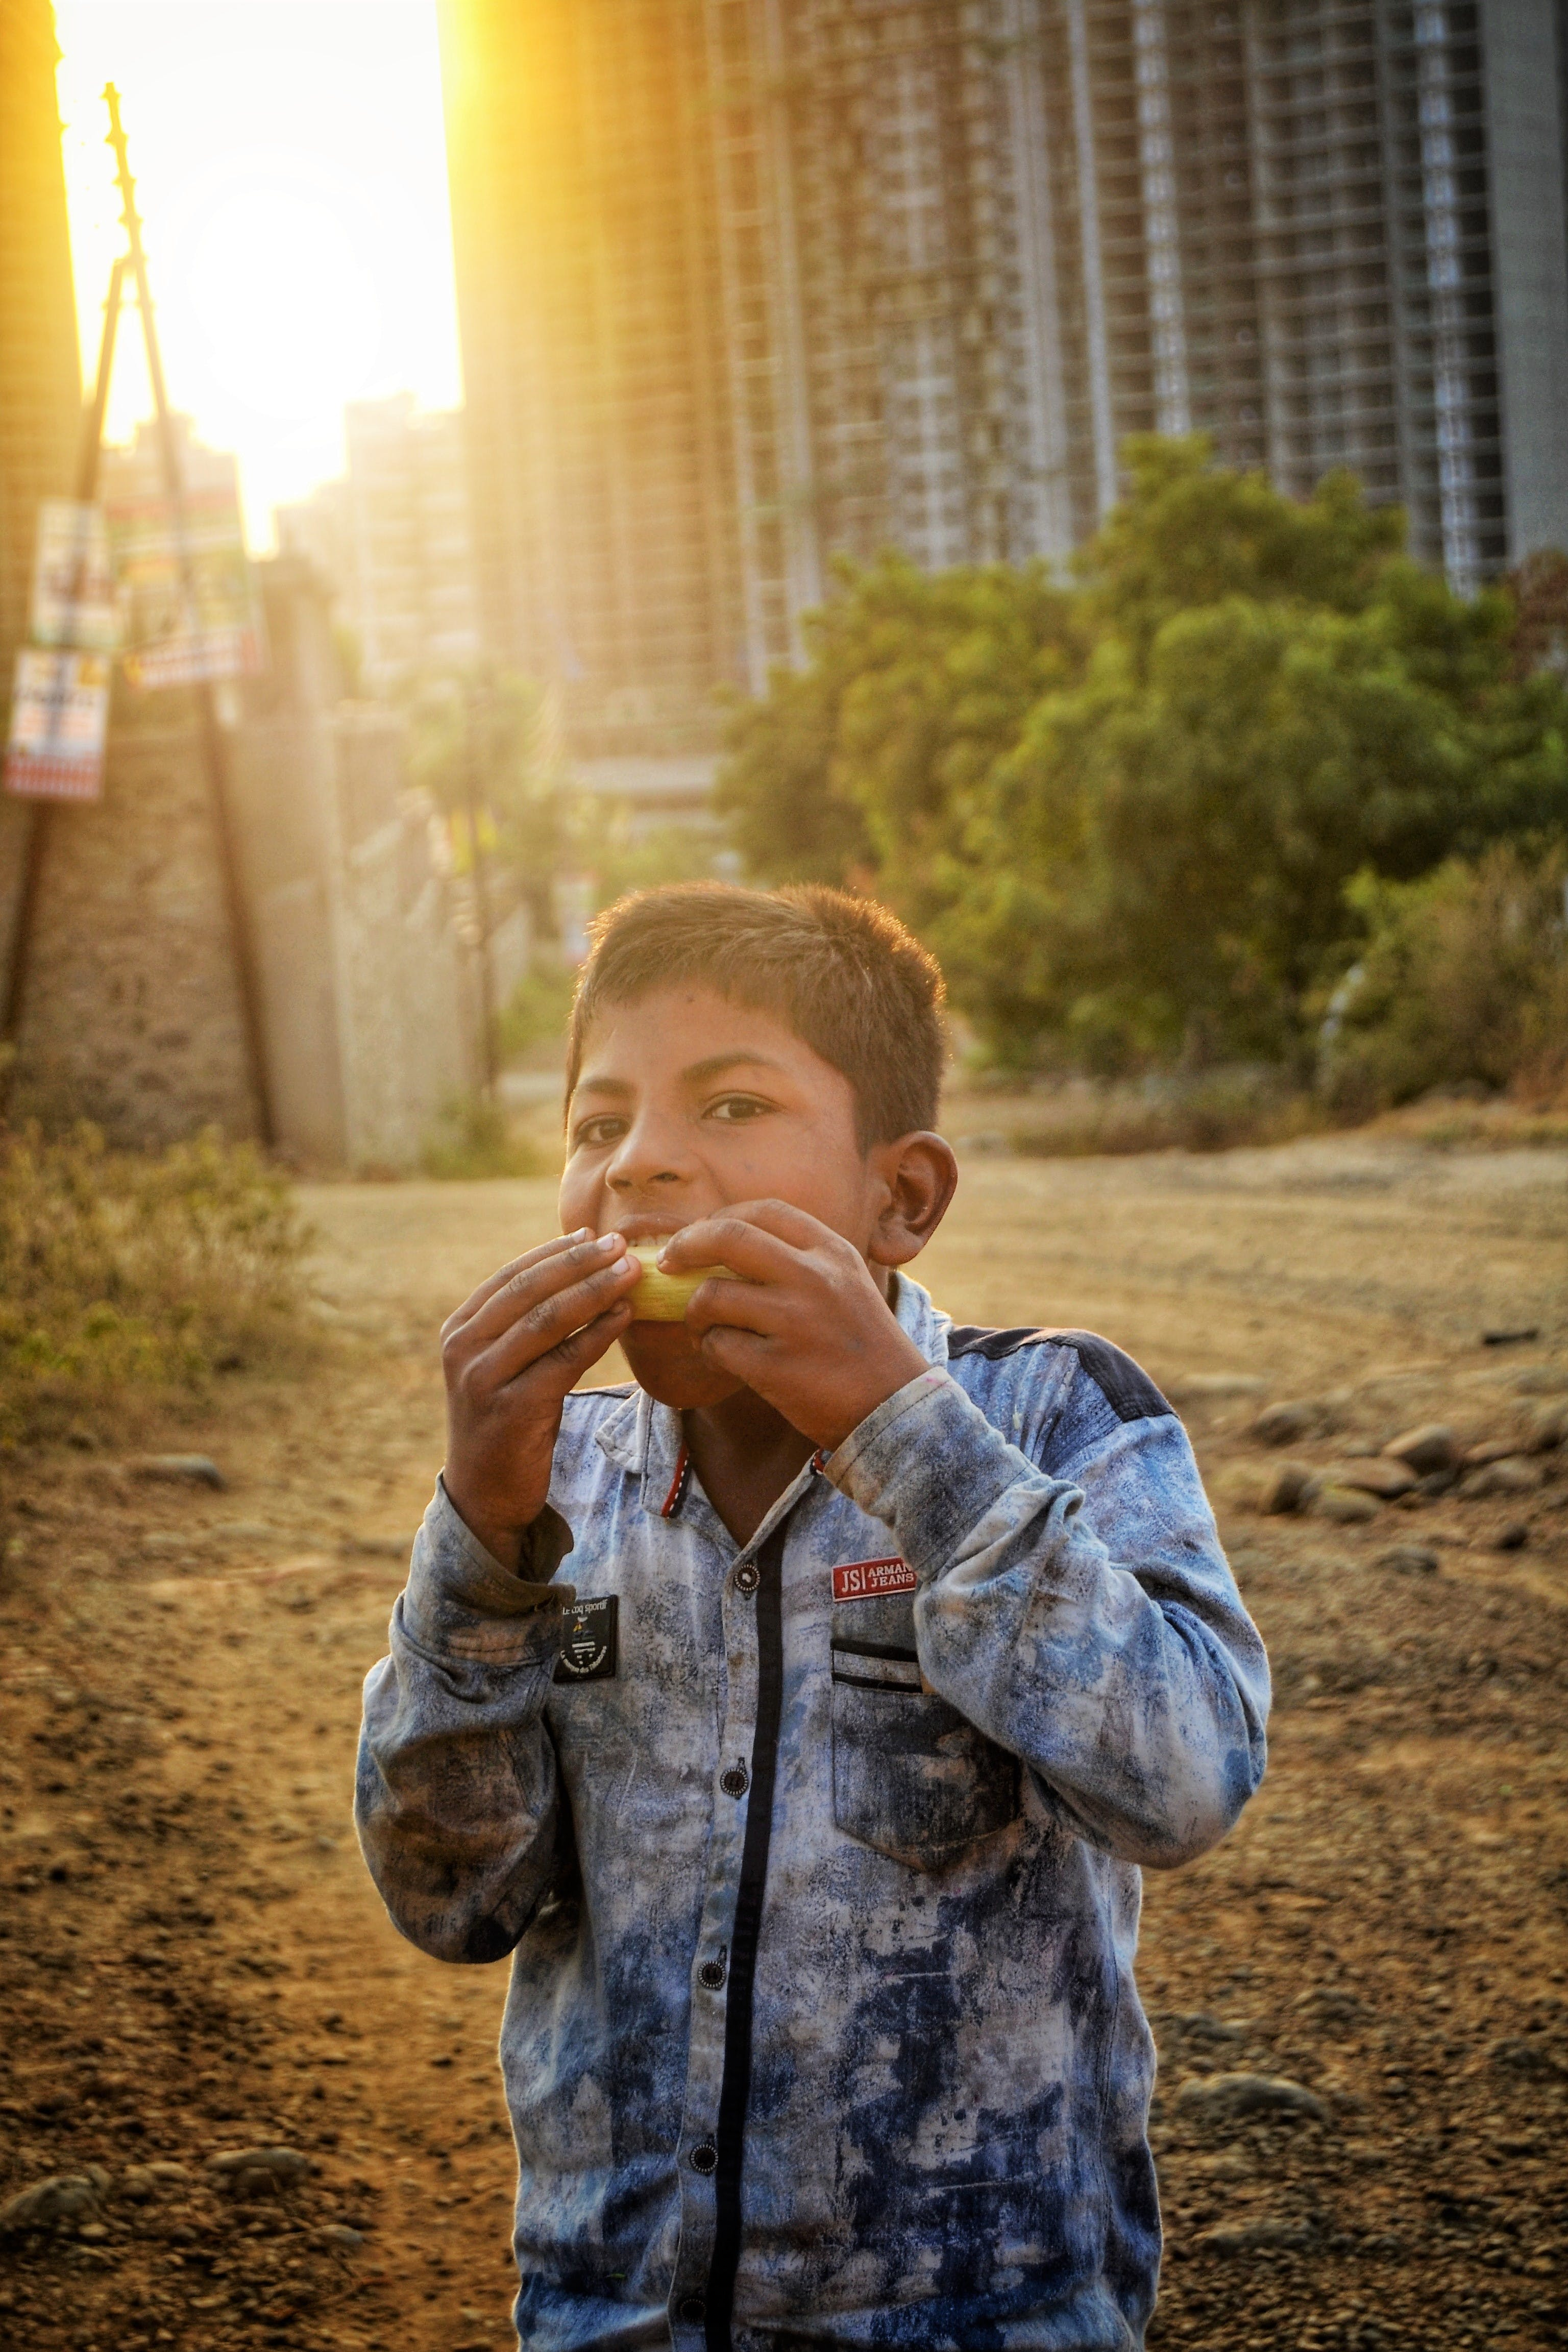 apartment buildings, asian child, background